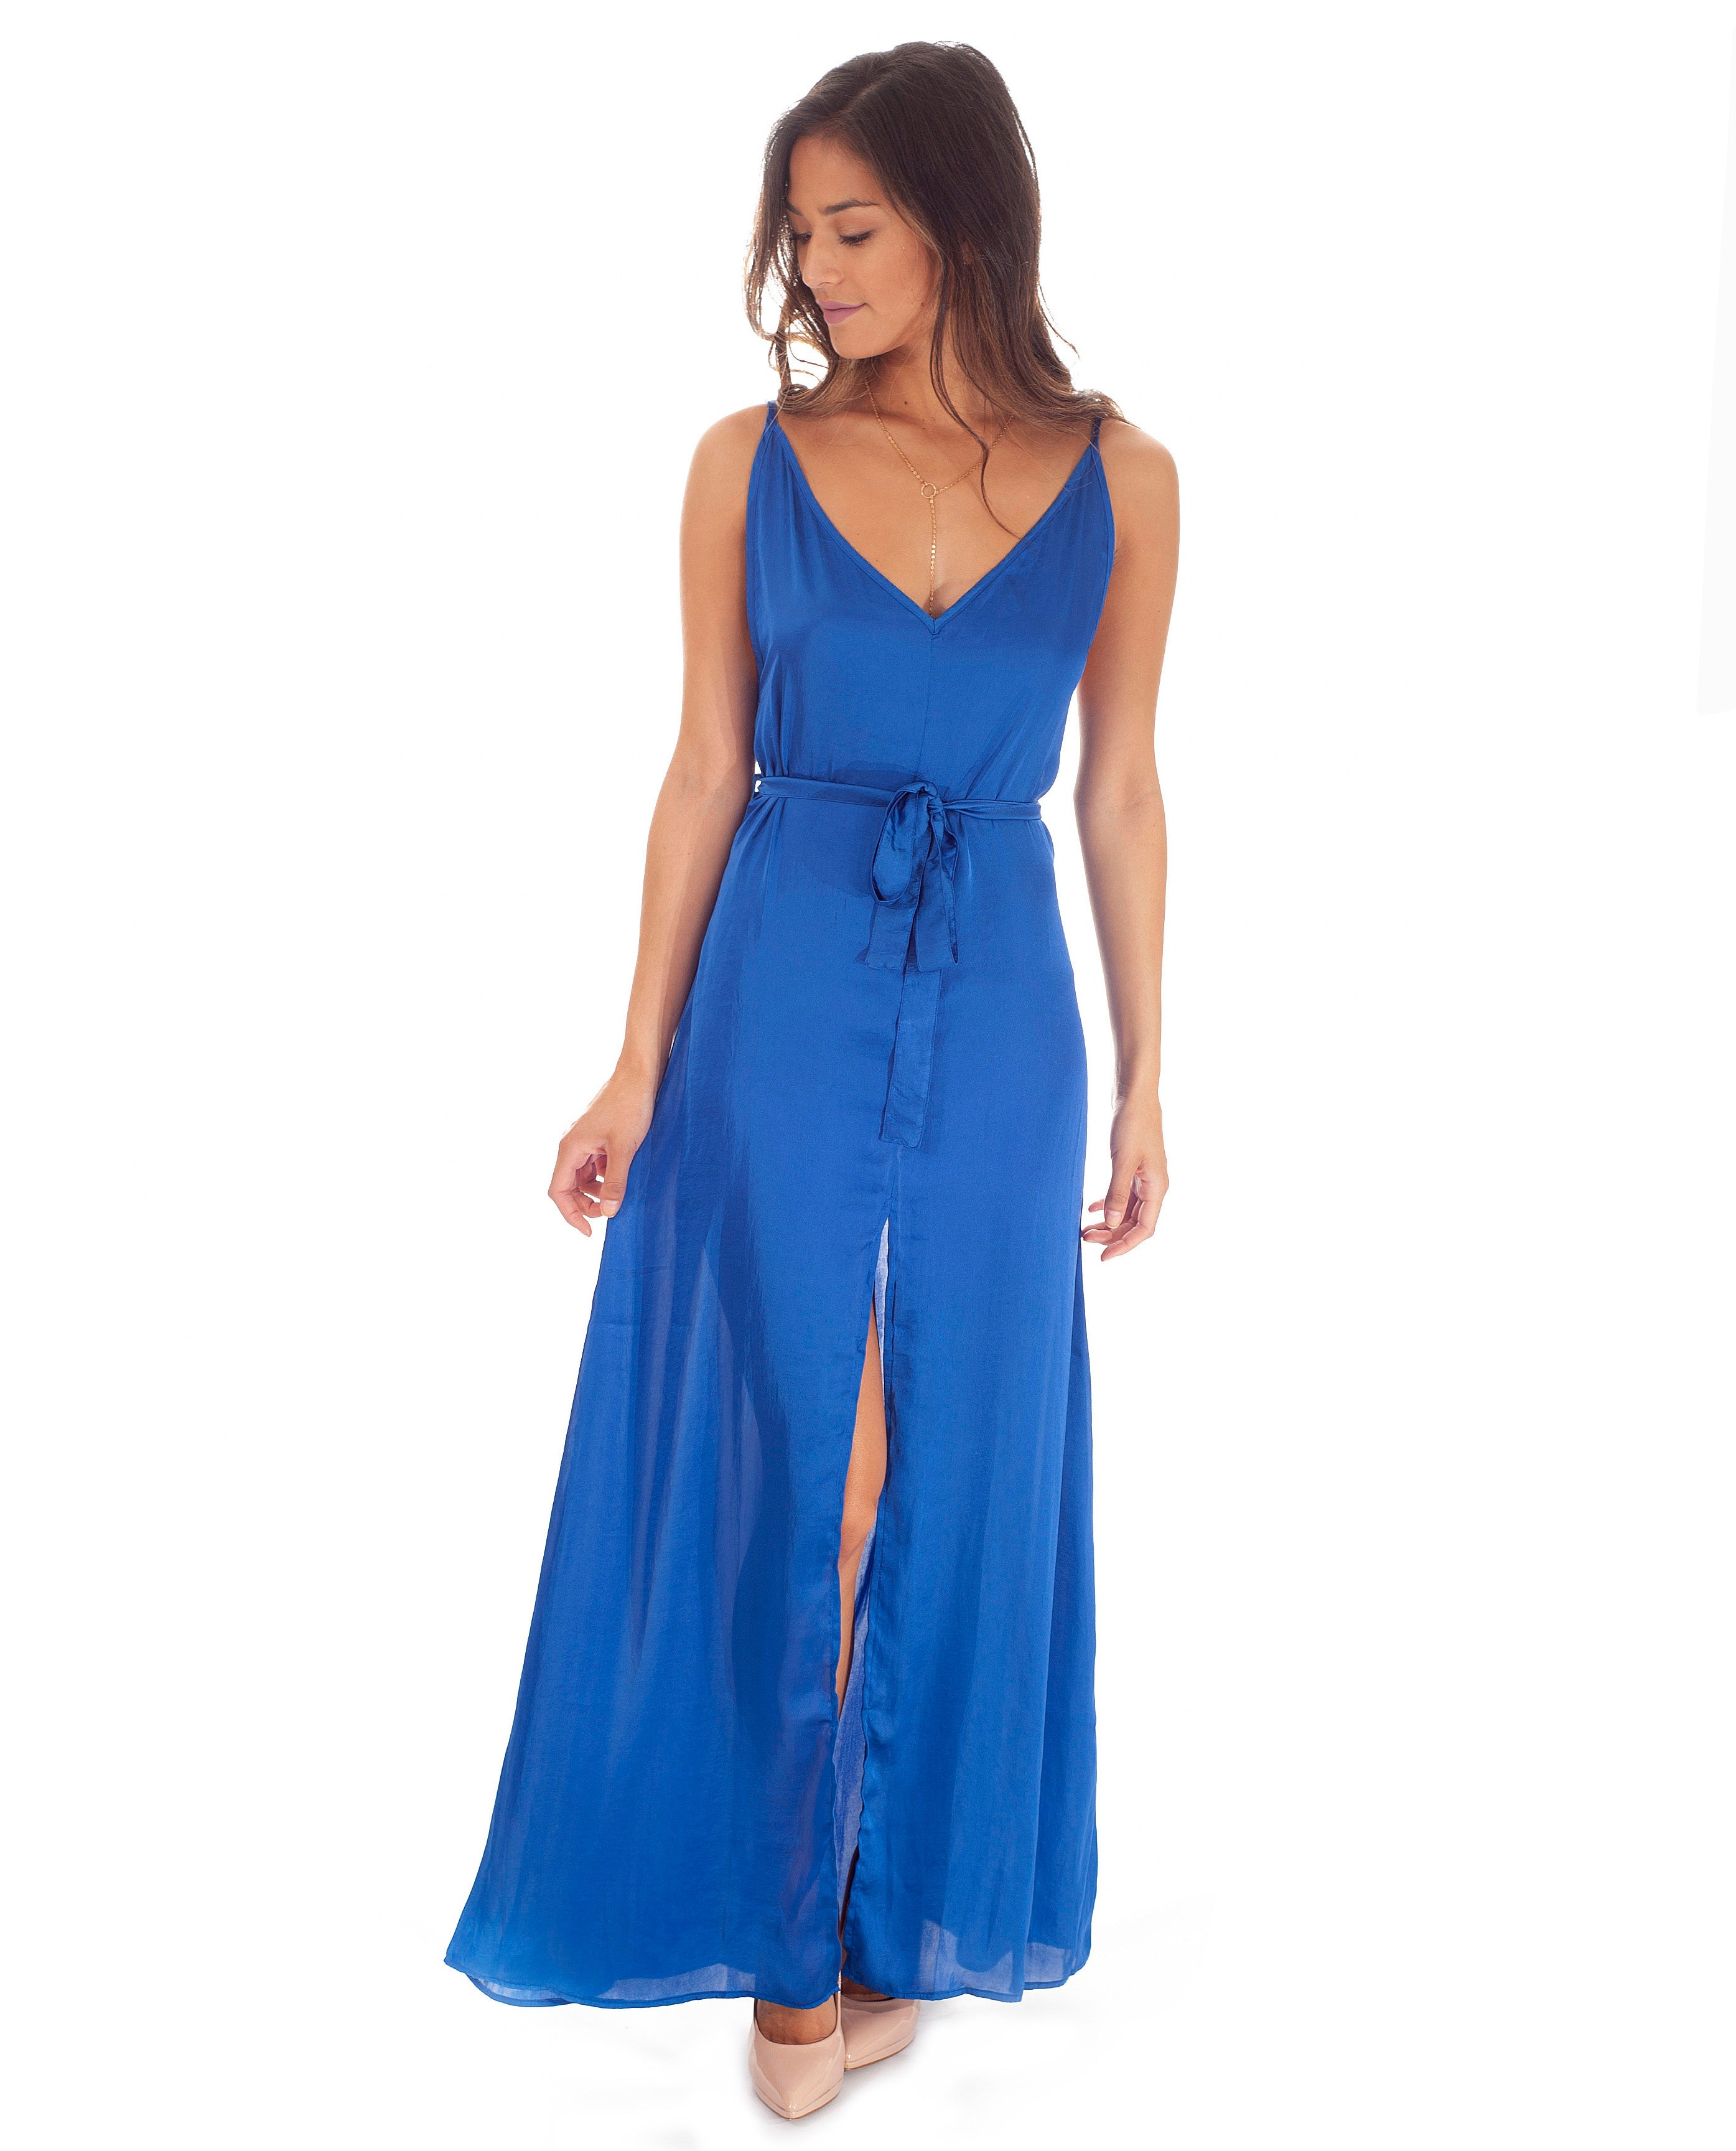 Hire Dancing Leopard Blue Satin Split Front Maxi | Hirestreetuk.com